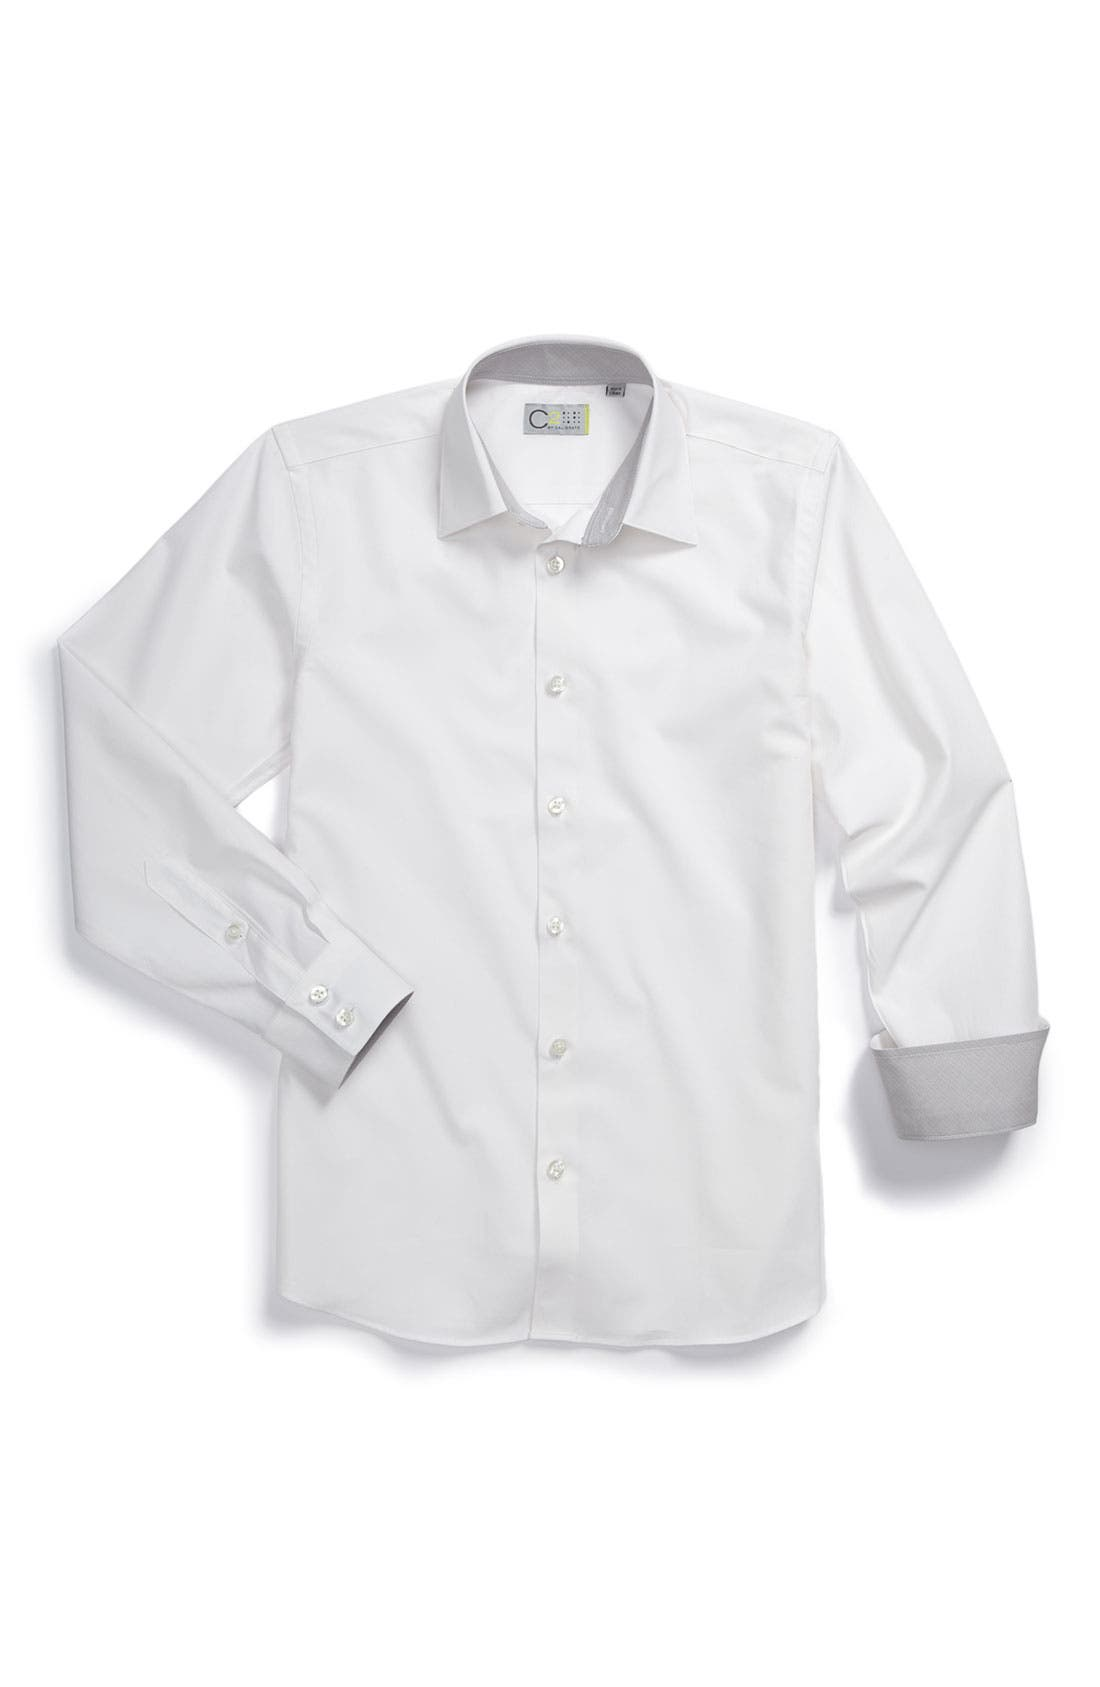 Alternate Image 1 Selected - C2 by Calibrate Dress Shirt (Big Boys)